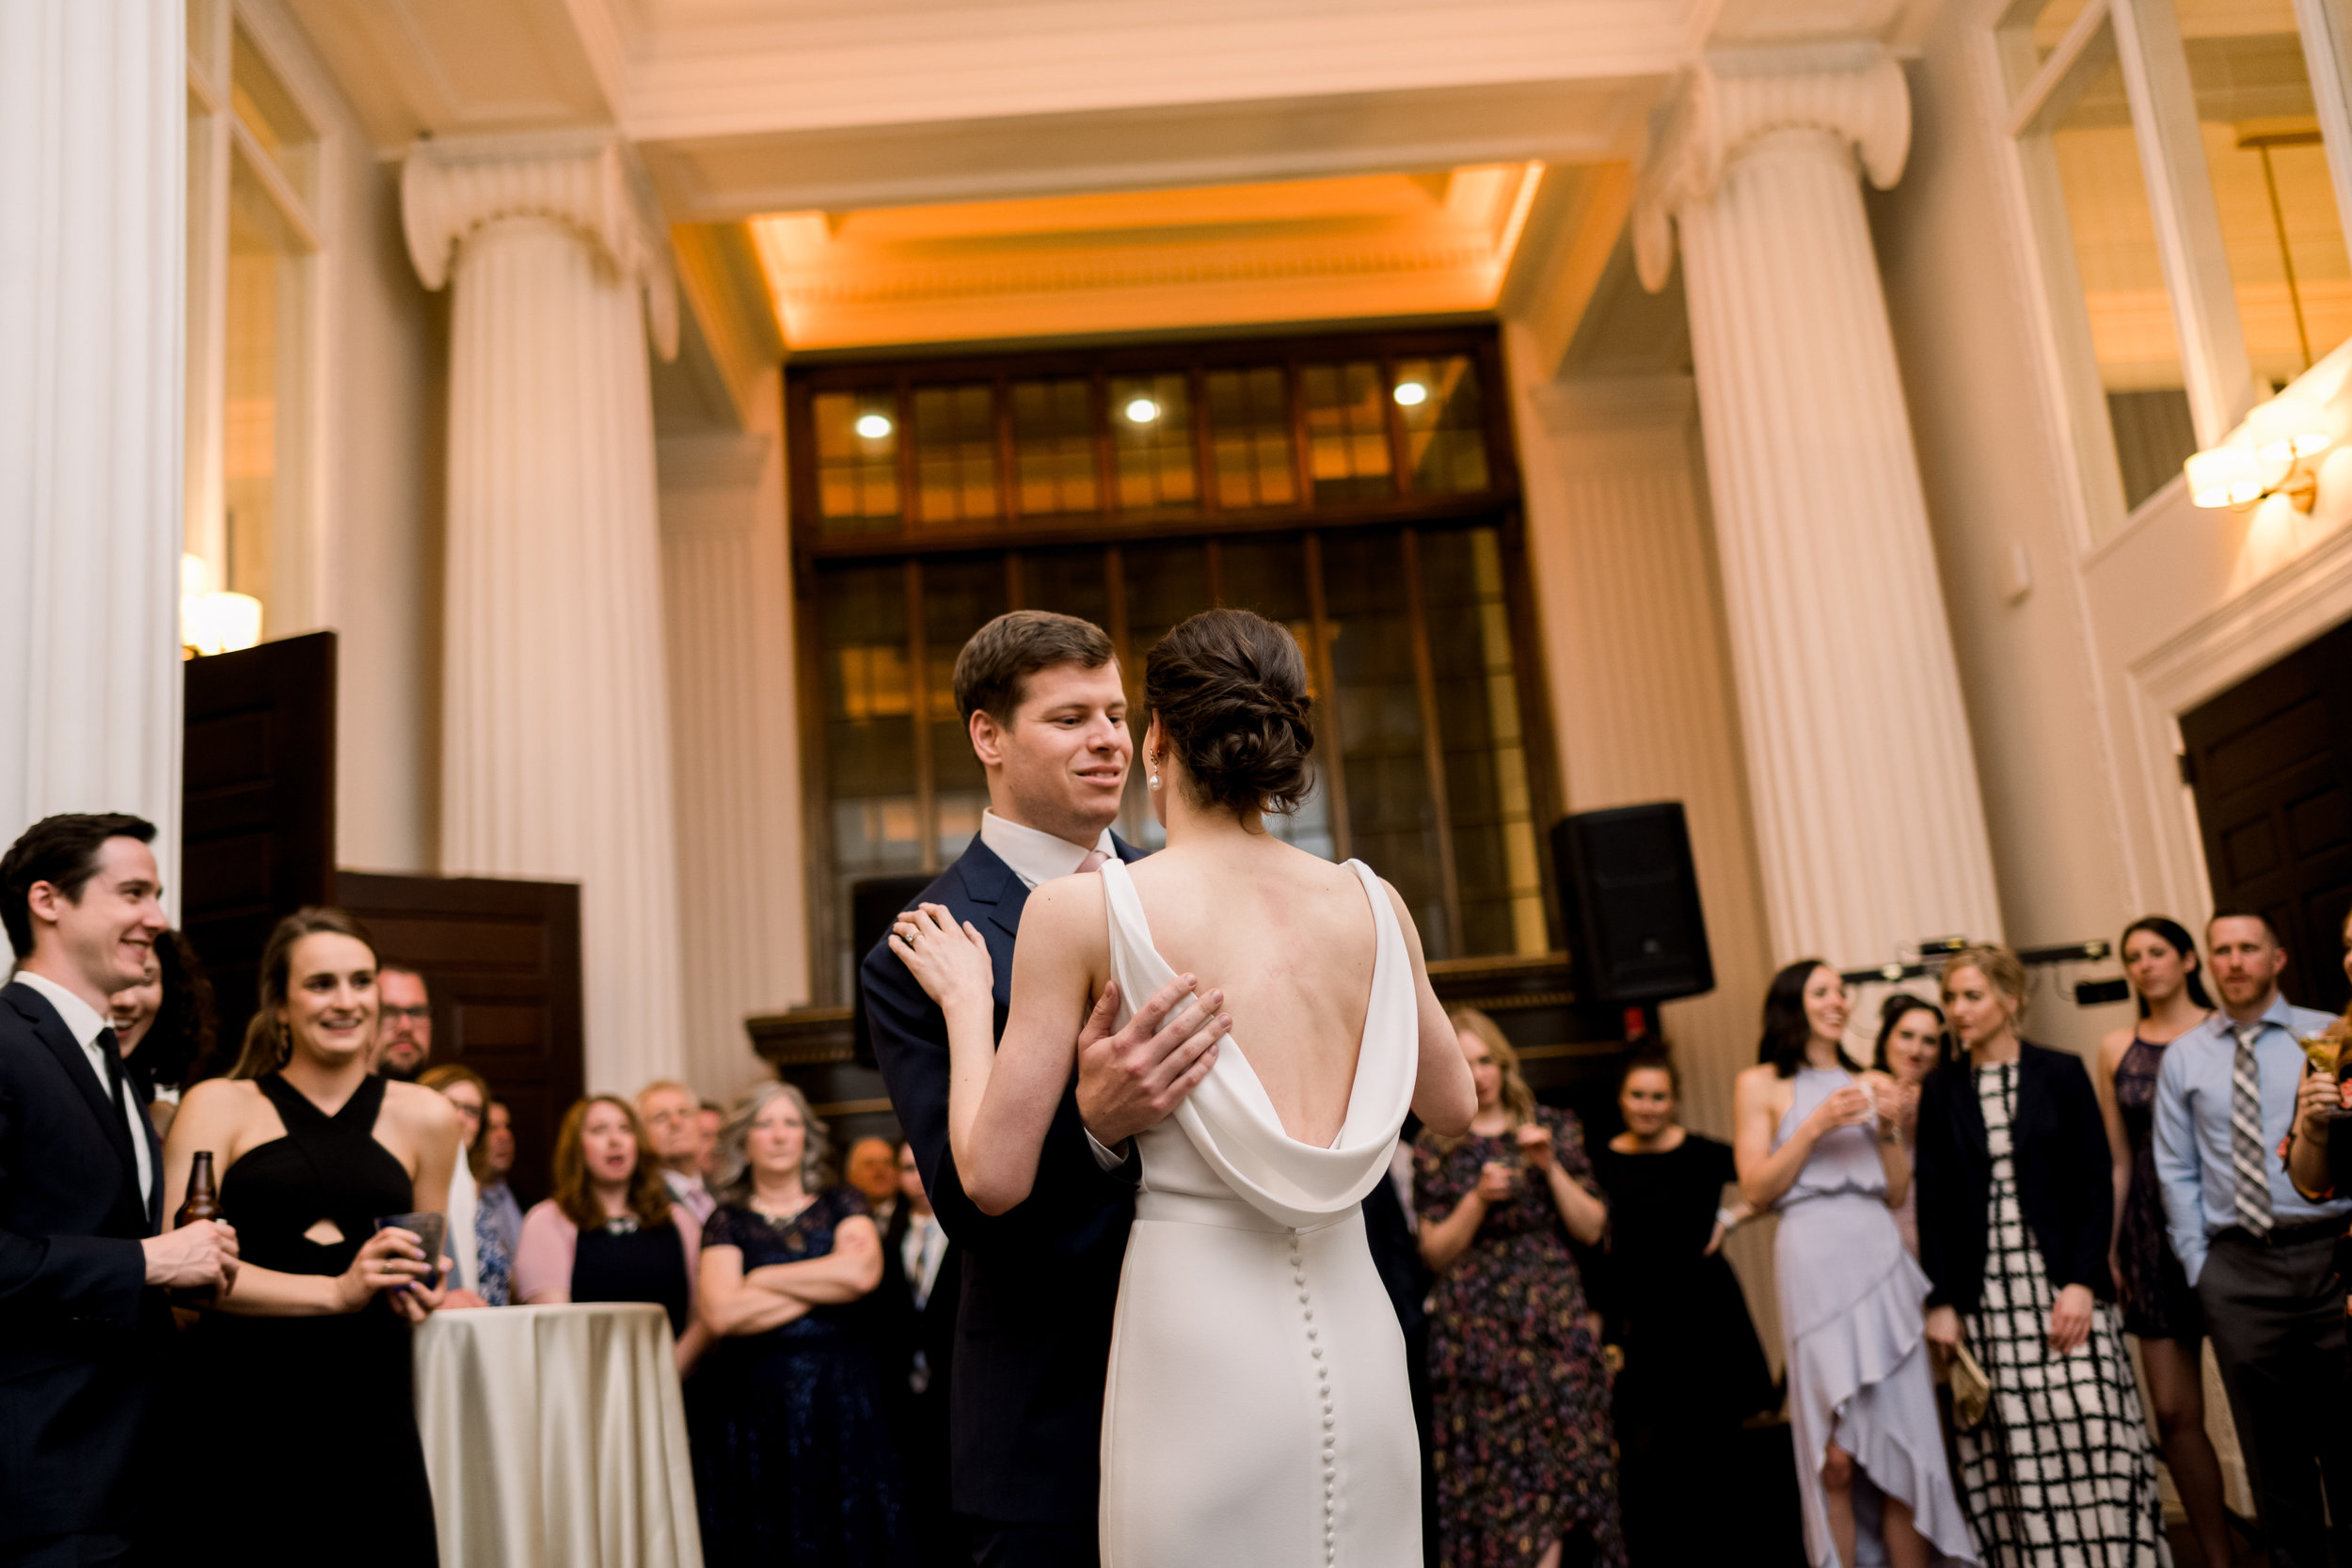 Bride and groom share first dance at Pittsburgh wedding at Hotel Monaco planned by Exhale Events. Find more modern wedding ideas at exhale-events.com!